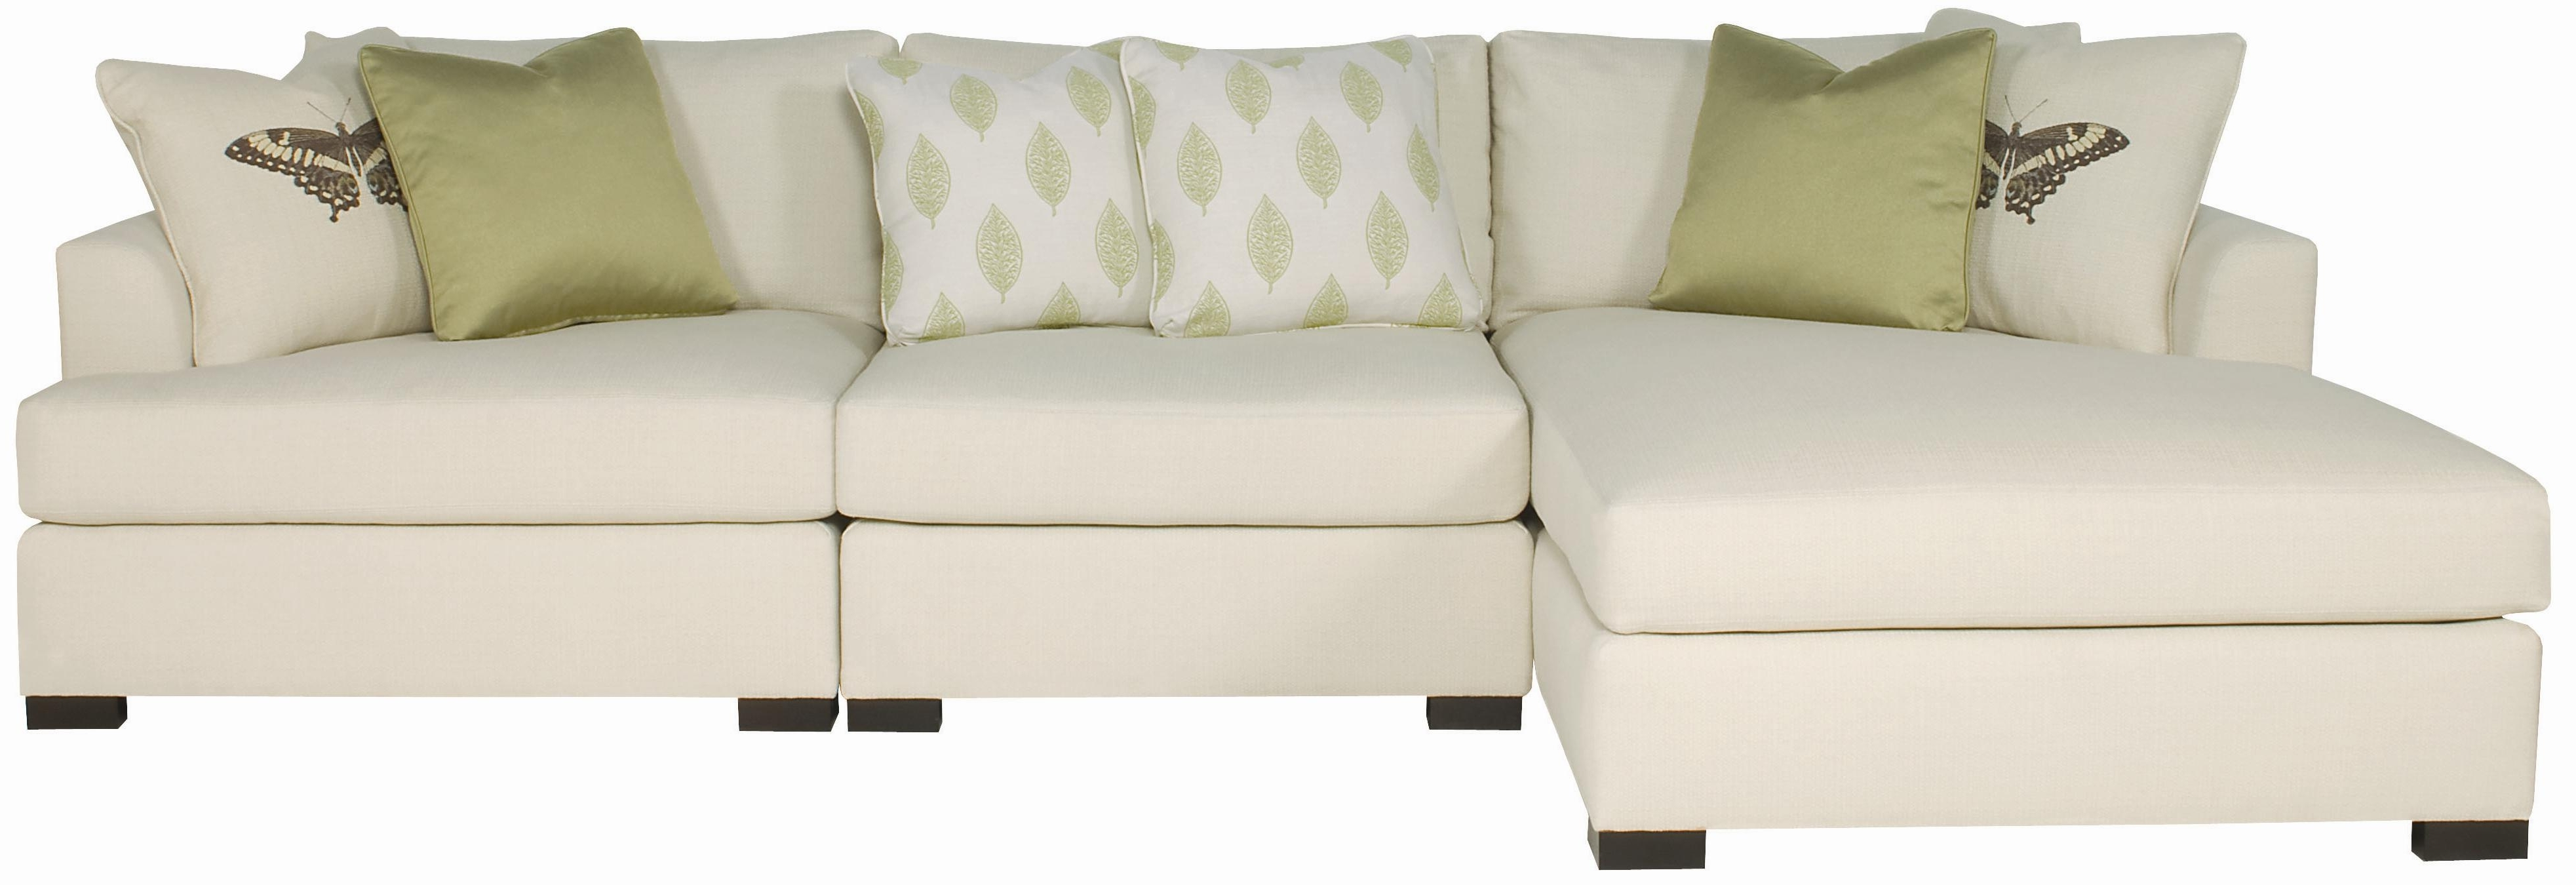 Most Recent Knoxville Tn Sectional Sofas For Adriana Sectional Sofa With Chaise Loungerbernhardt (View 14 of 20)